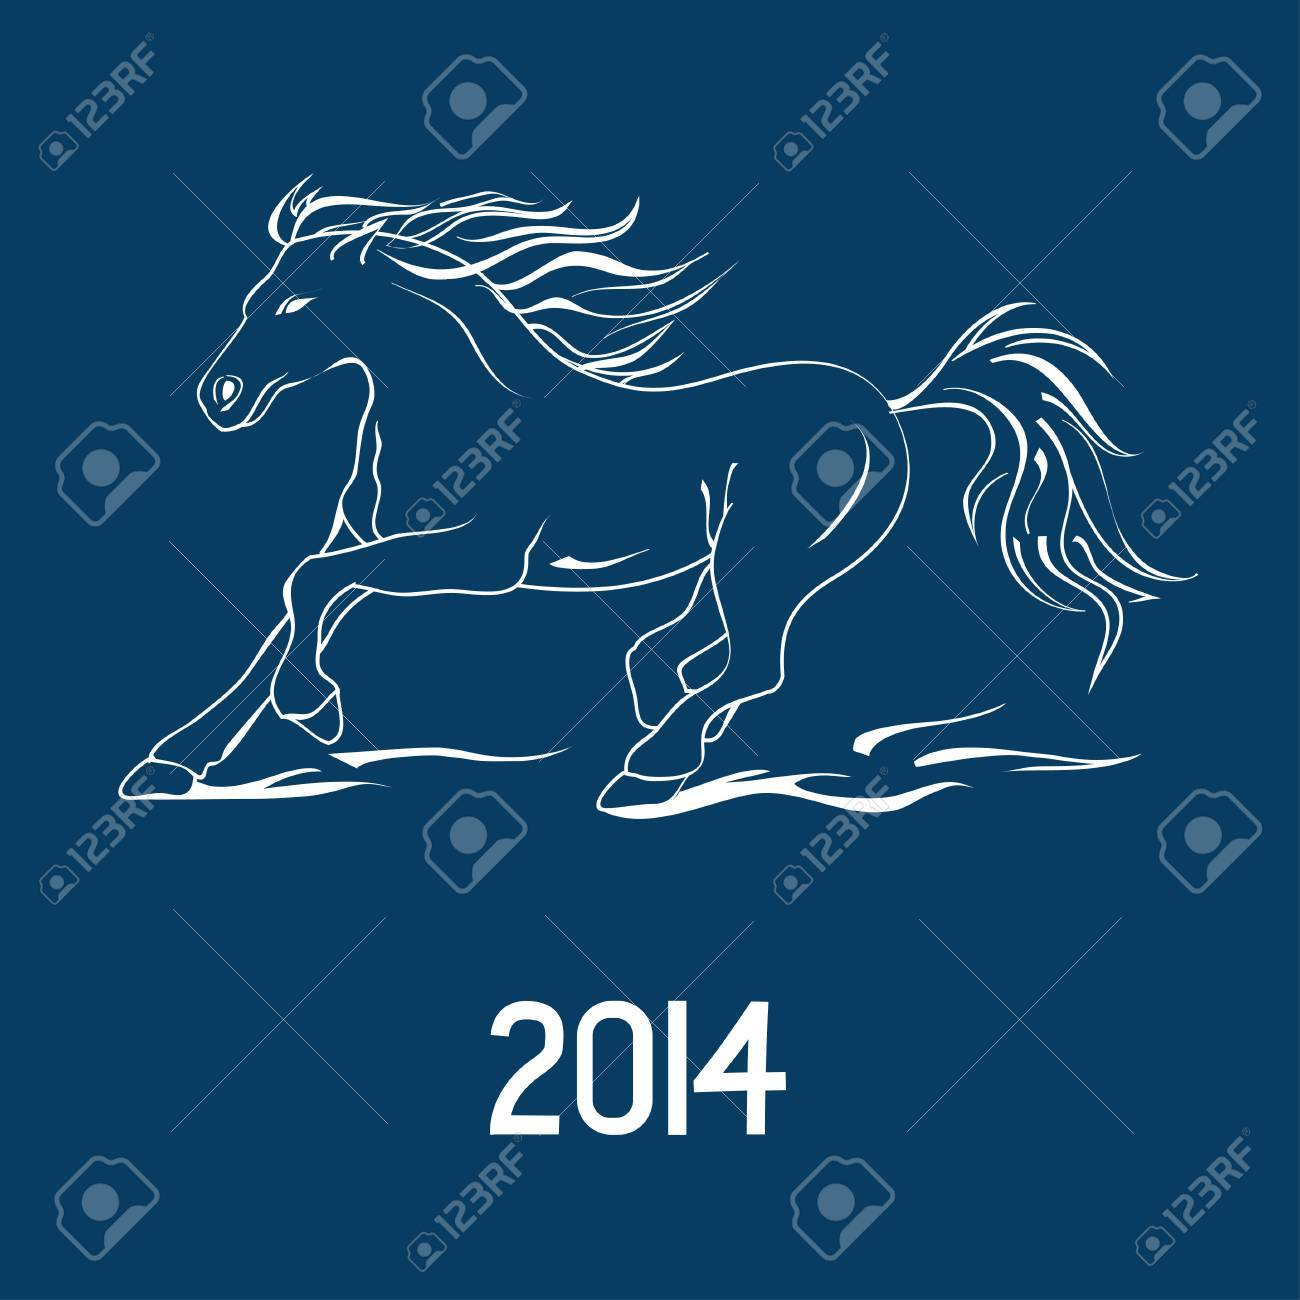 Illustration with New Year 2014 symbol of horse Stock Vector - 23498903